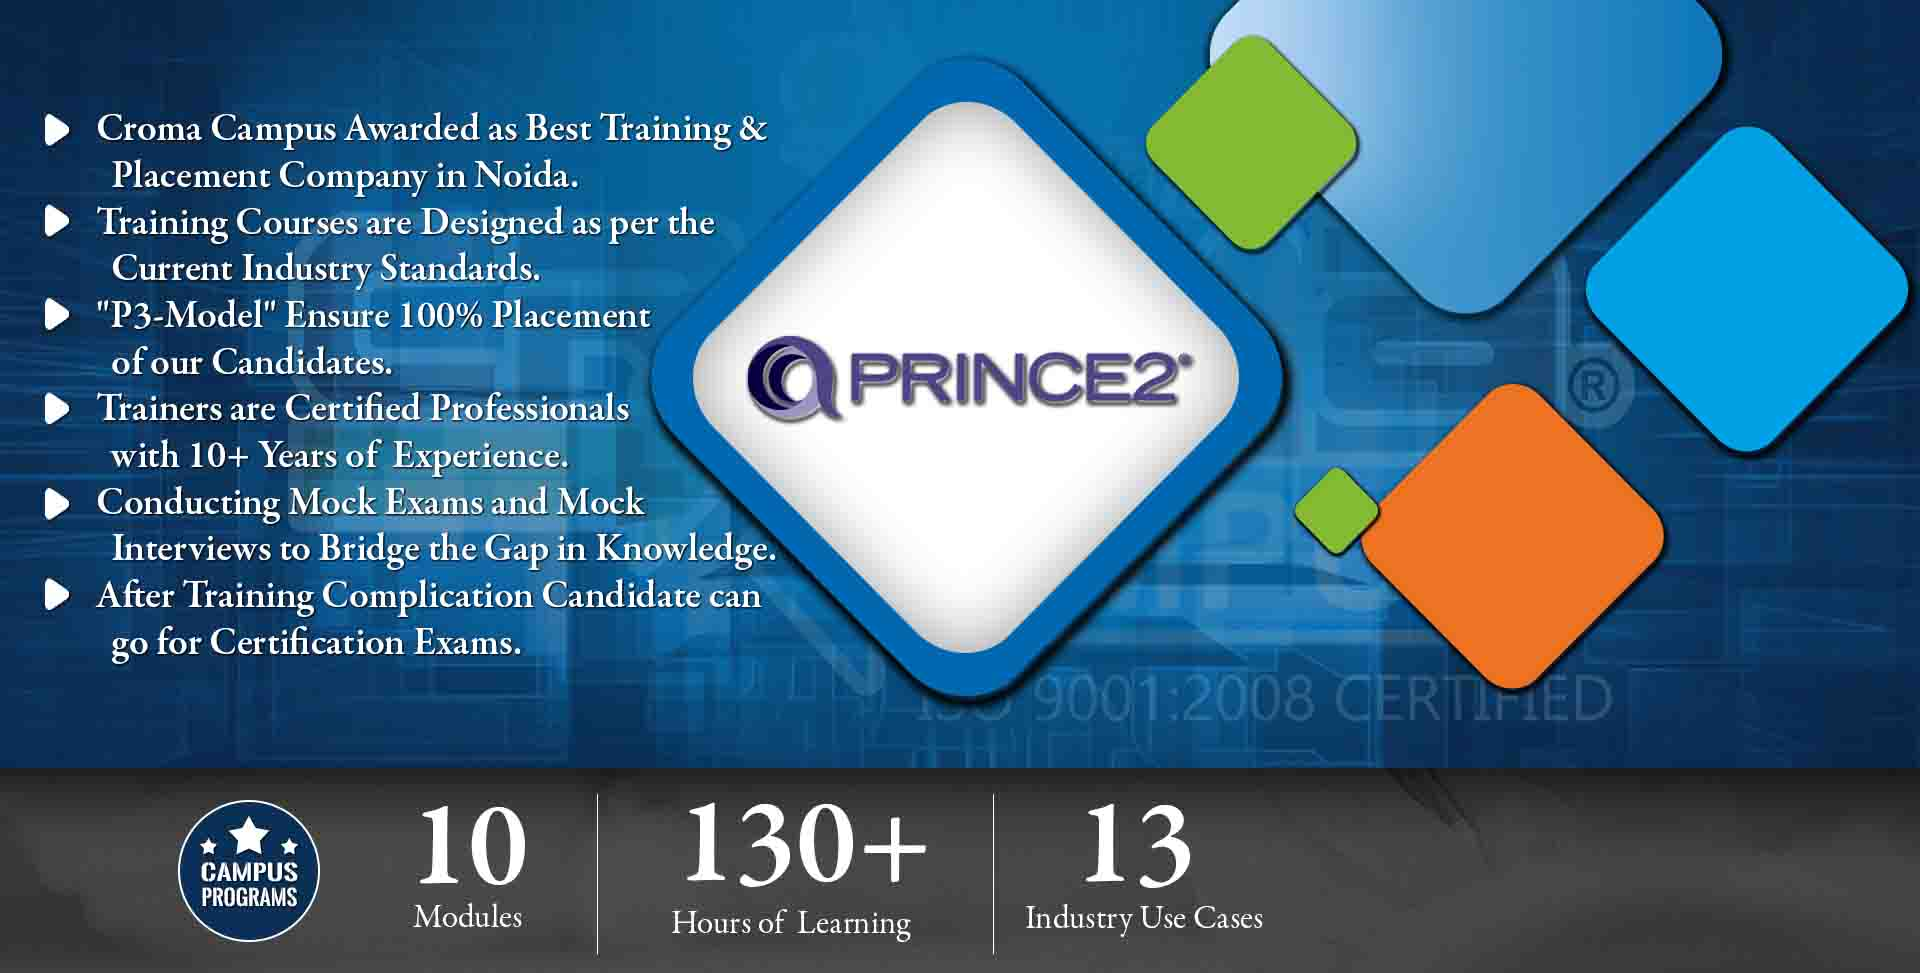 Prince2 Training in Delhi NCR- Croma Campus